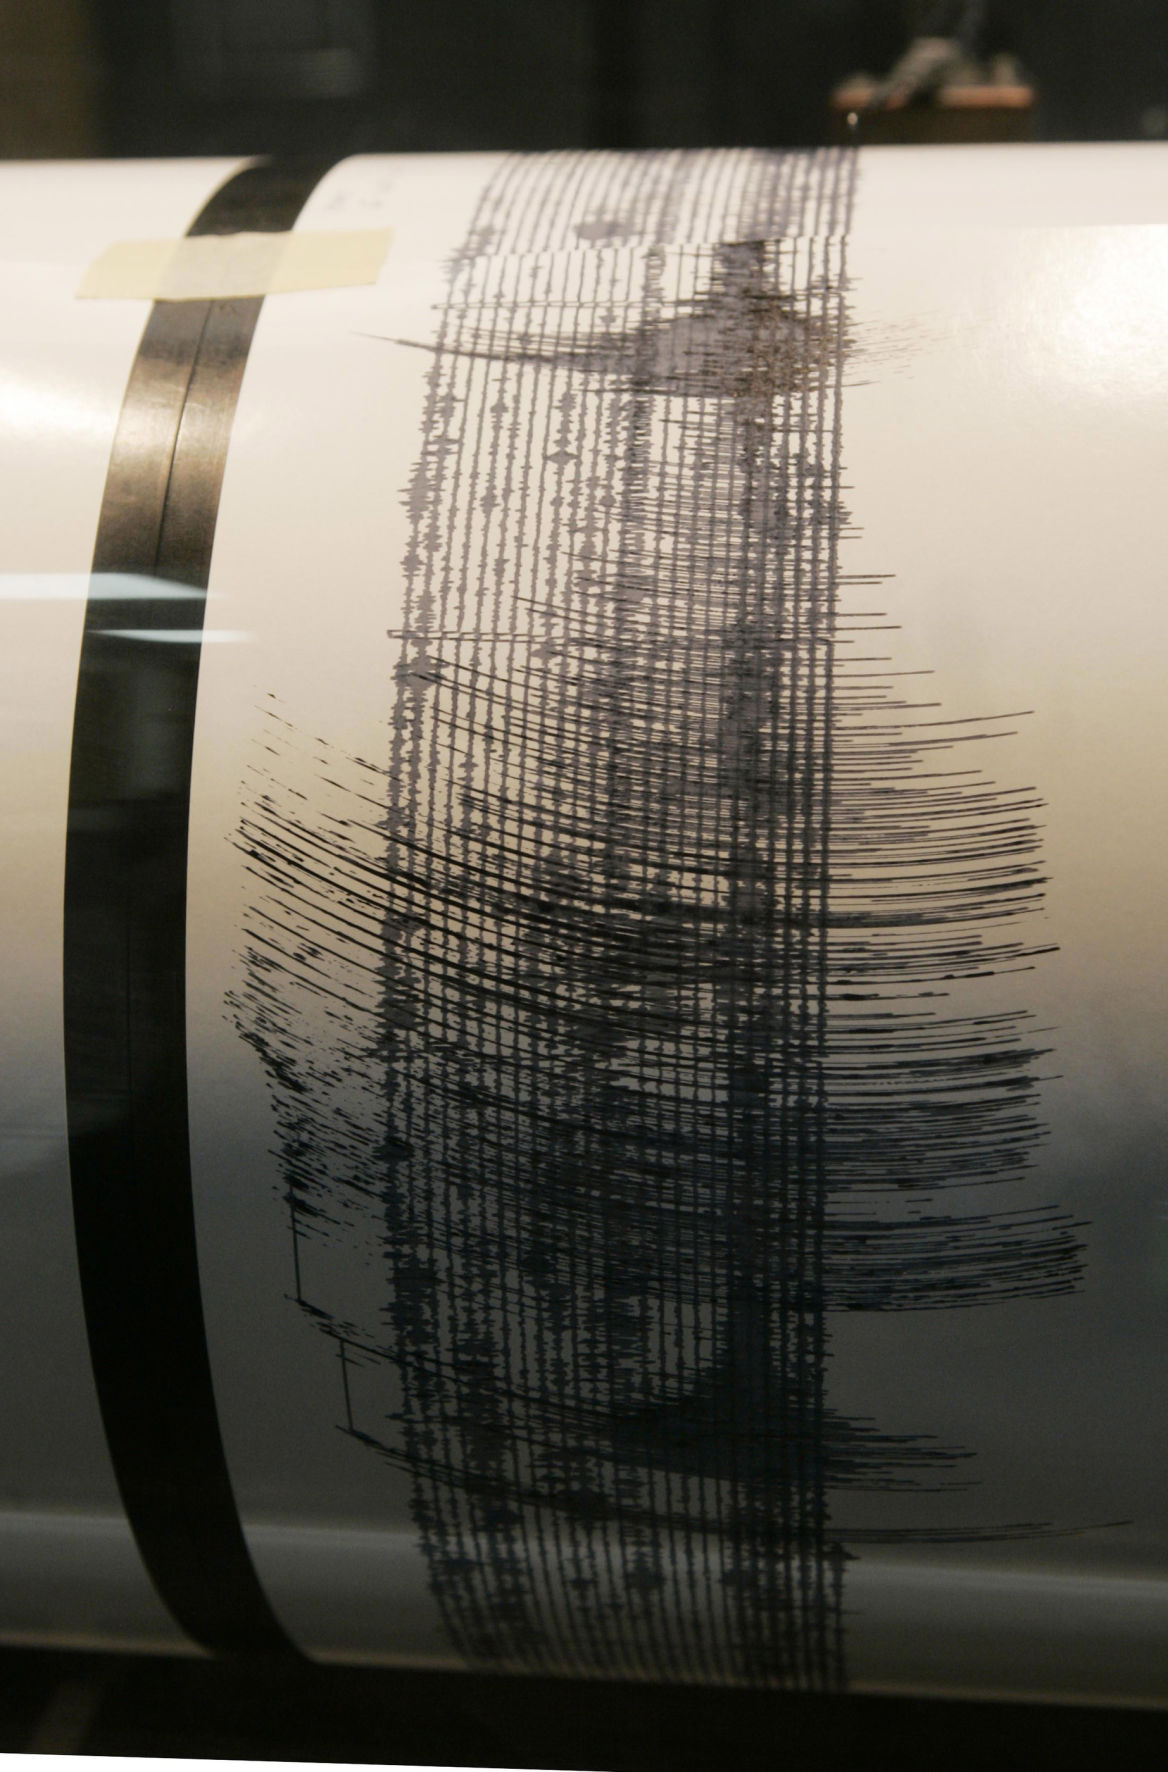 Did you feel it? 1.9-earthquake reported near Ladson Saturday night 1.8-earthquake rattles Summerville Monday 'We are the bull's-eye' Future events might shake us up, according to quake maps that put Charleston in a high-risk zone, but area is prepared